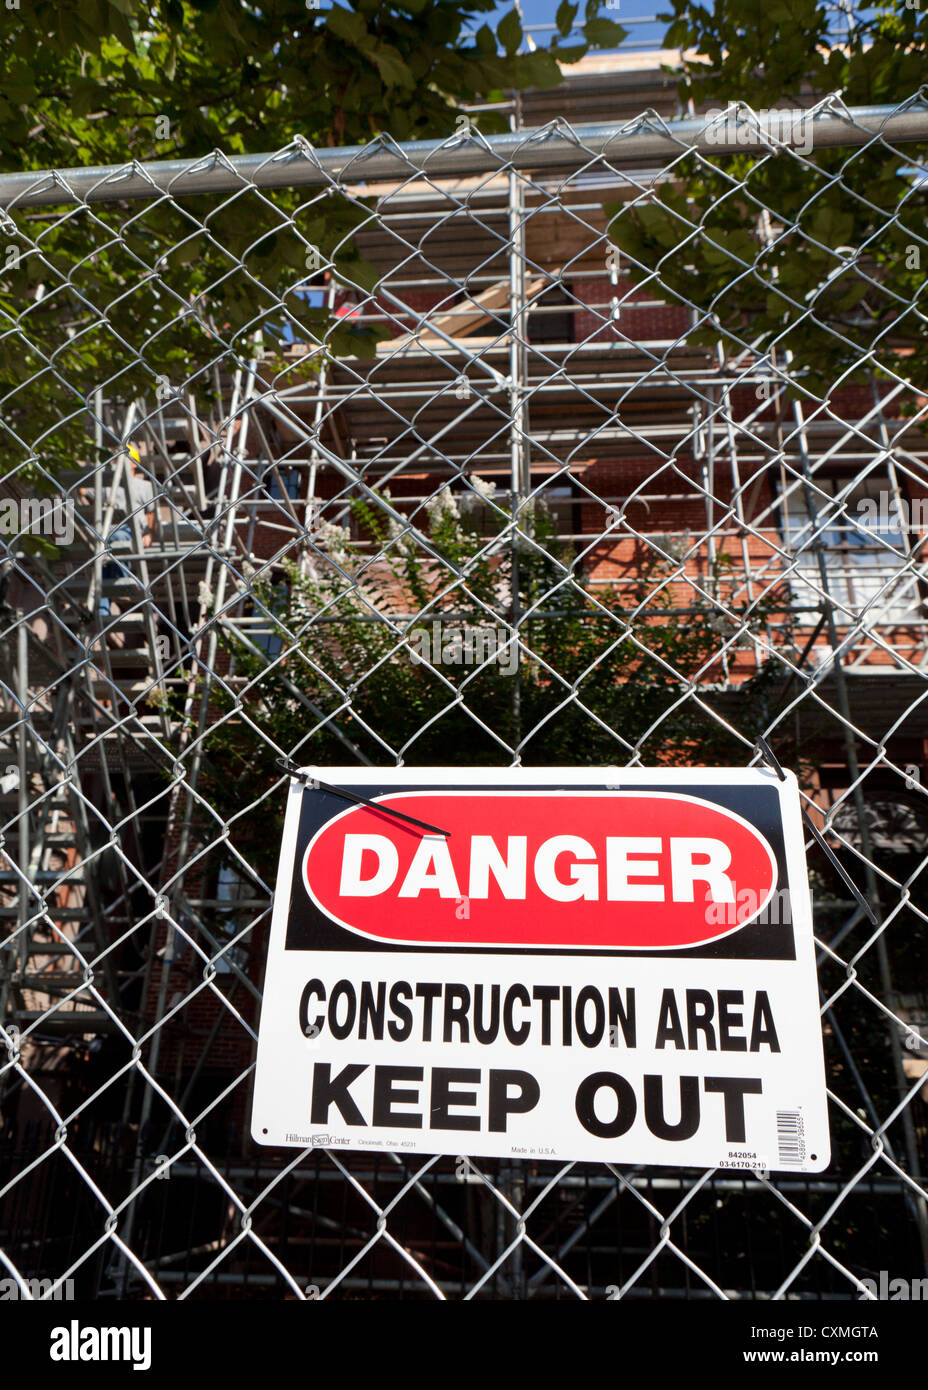 Danger sign on fenced construction area - Stock Image